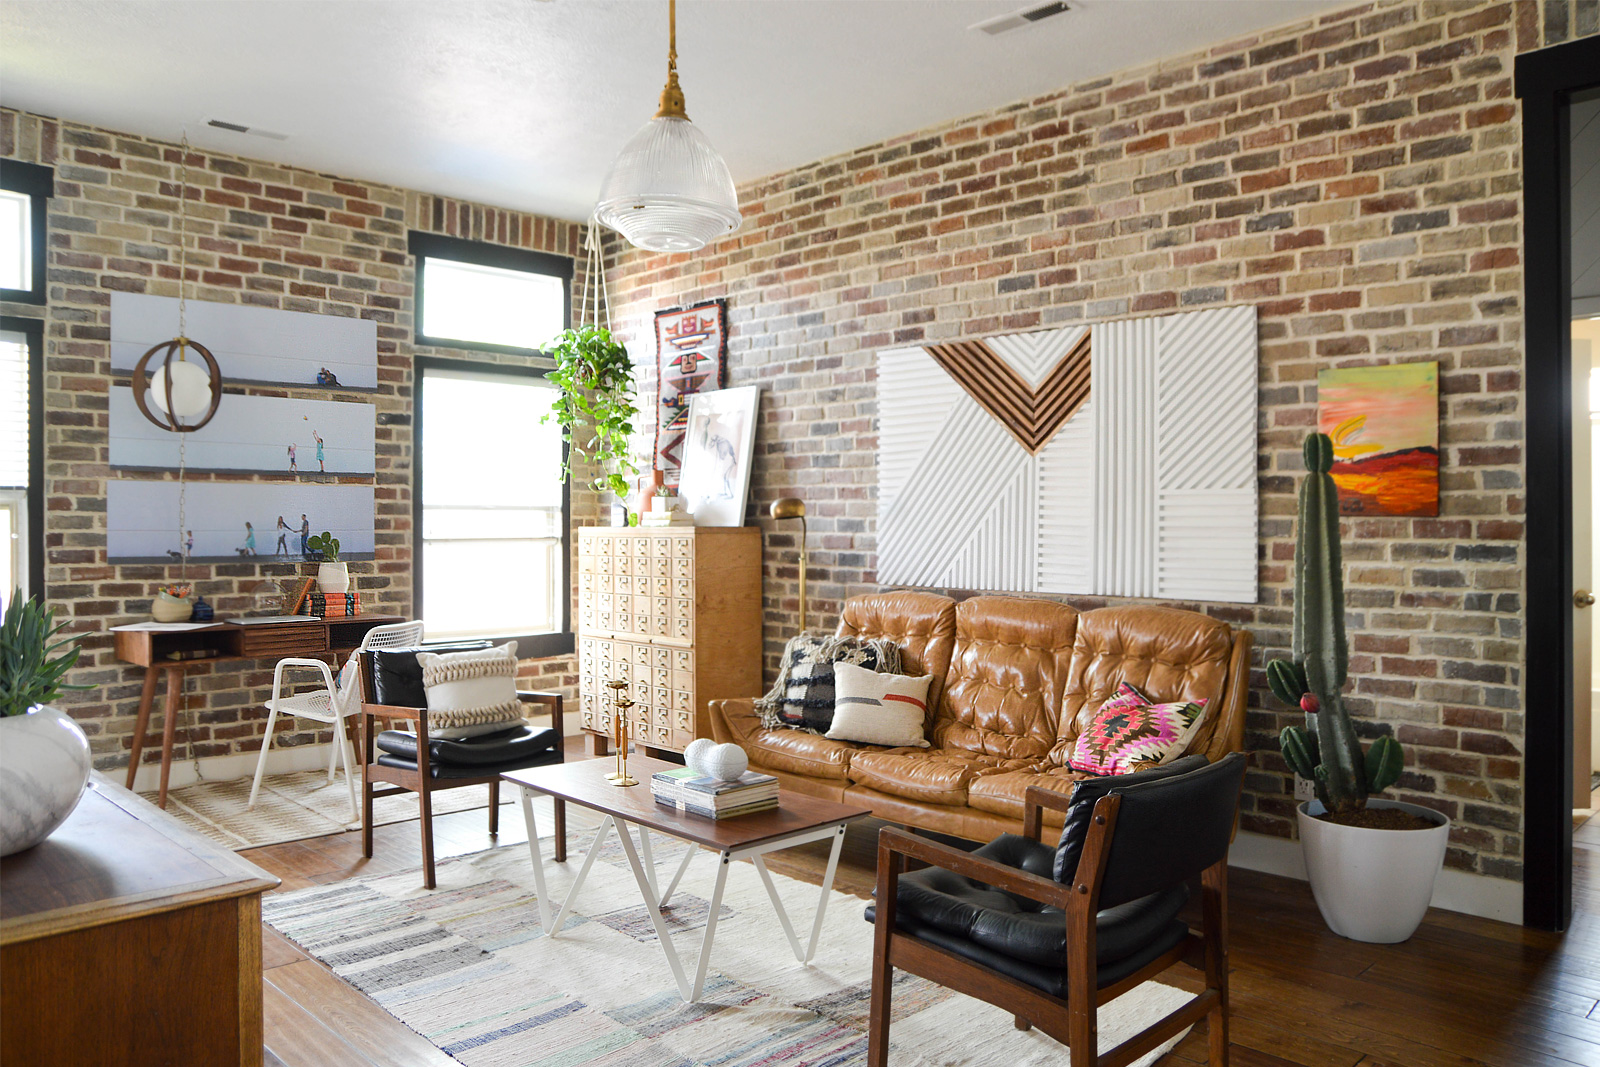 Bright living room with brick walls and wood floors